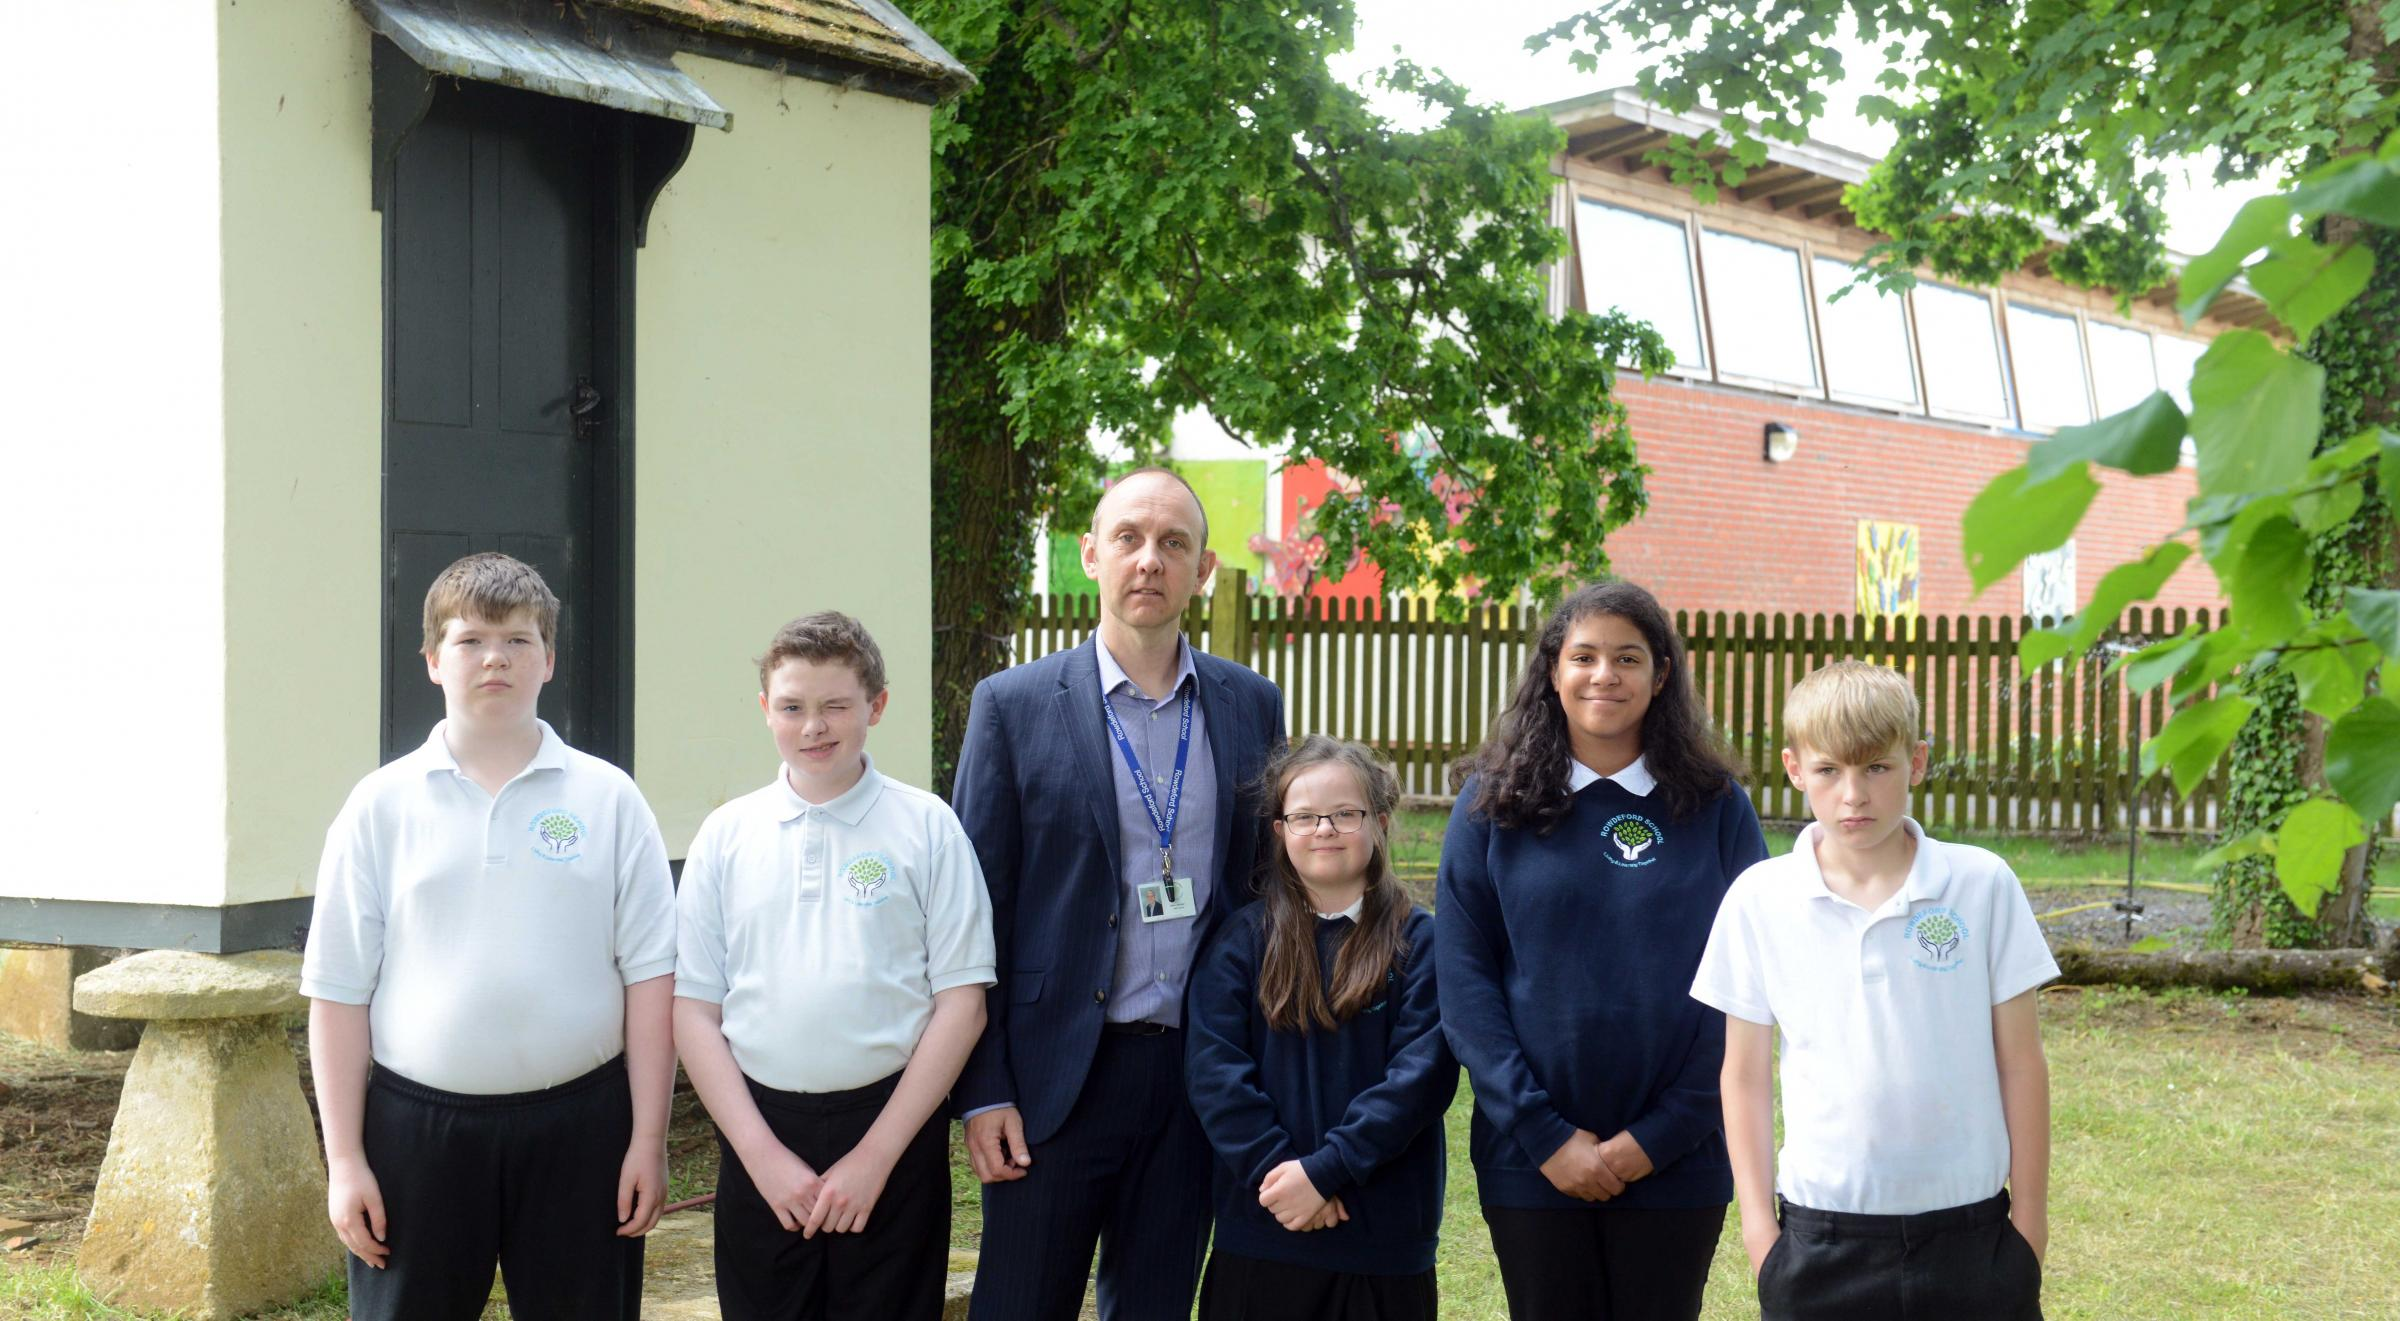 Rowdeford School under threat of closure.  Photo: Siobhan Boyle SMB2433/2  Pictured with head teacher Mike Loveridge are pupils l-r Sam, Isaac, Laura, Aliyah and Nathan